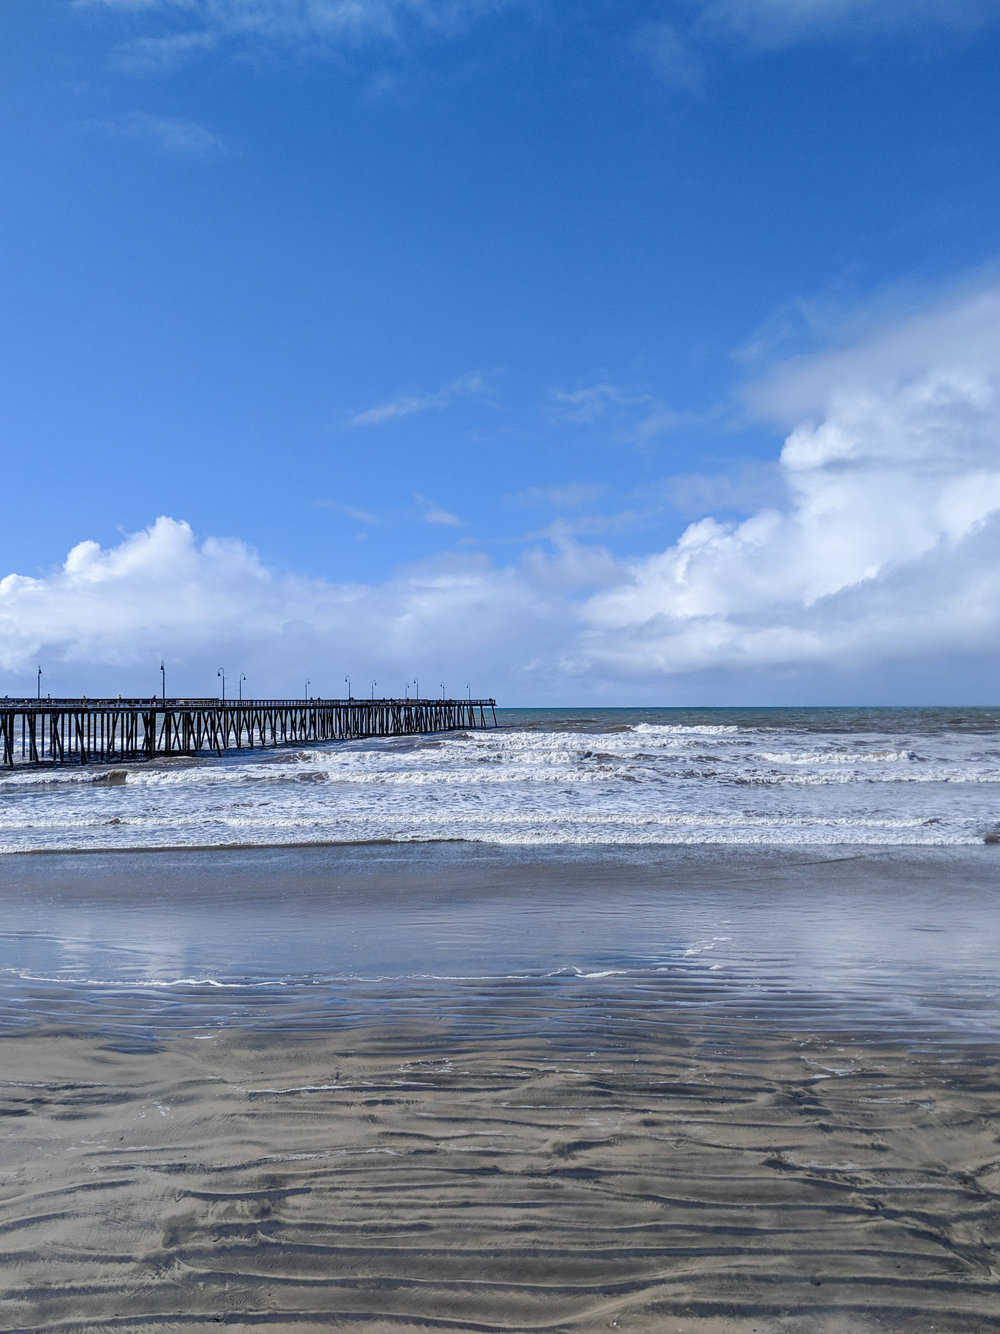 bri rinehart; photography; pismo beach; california; ocean; pier